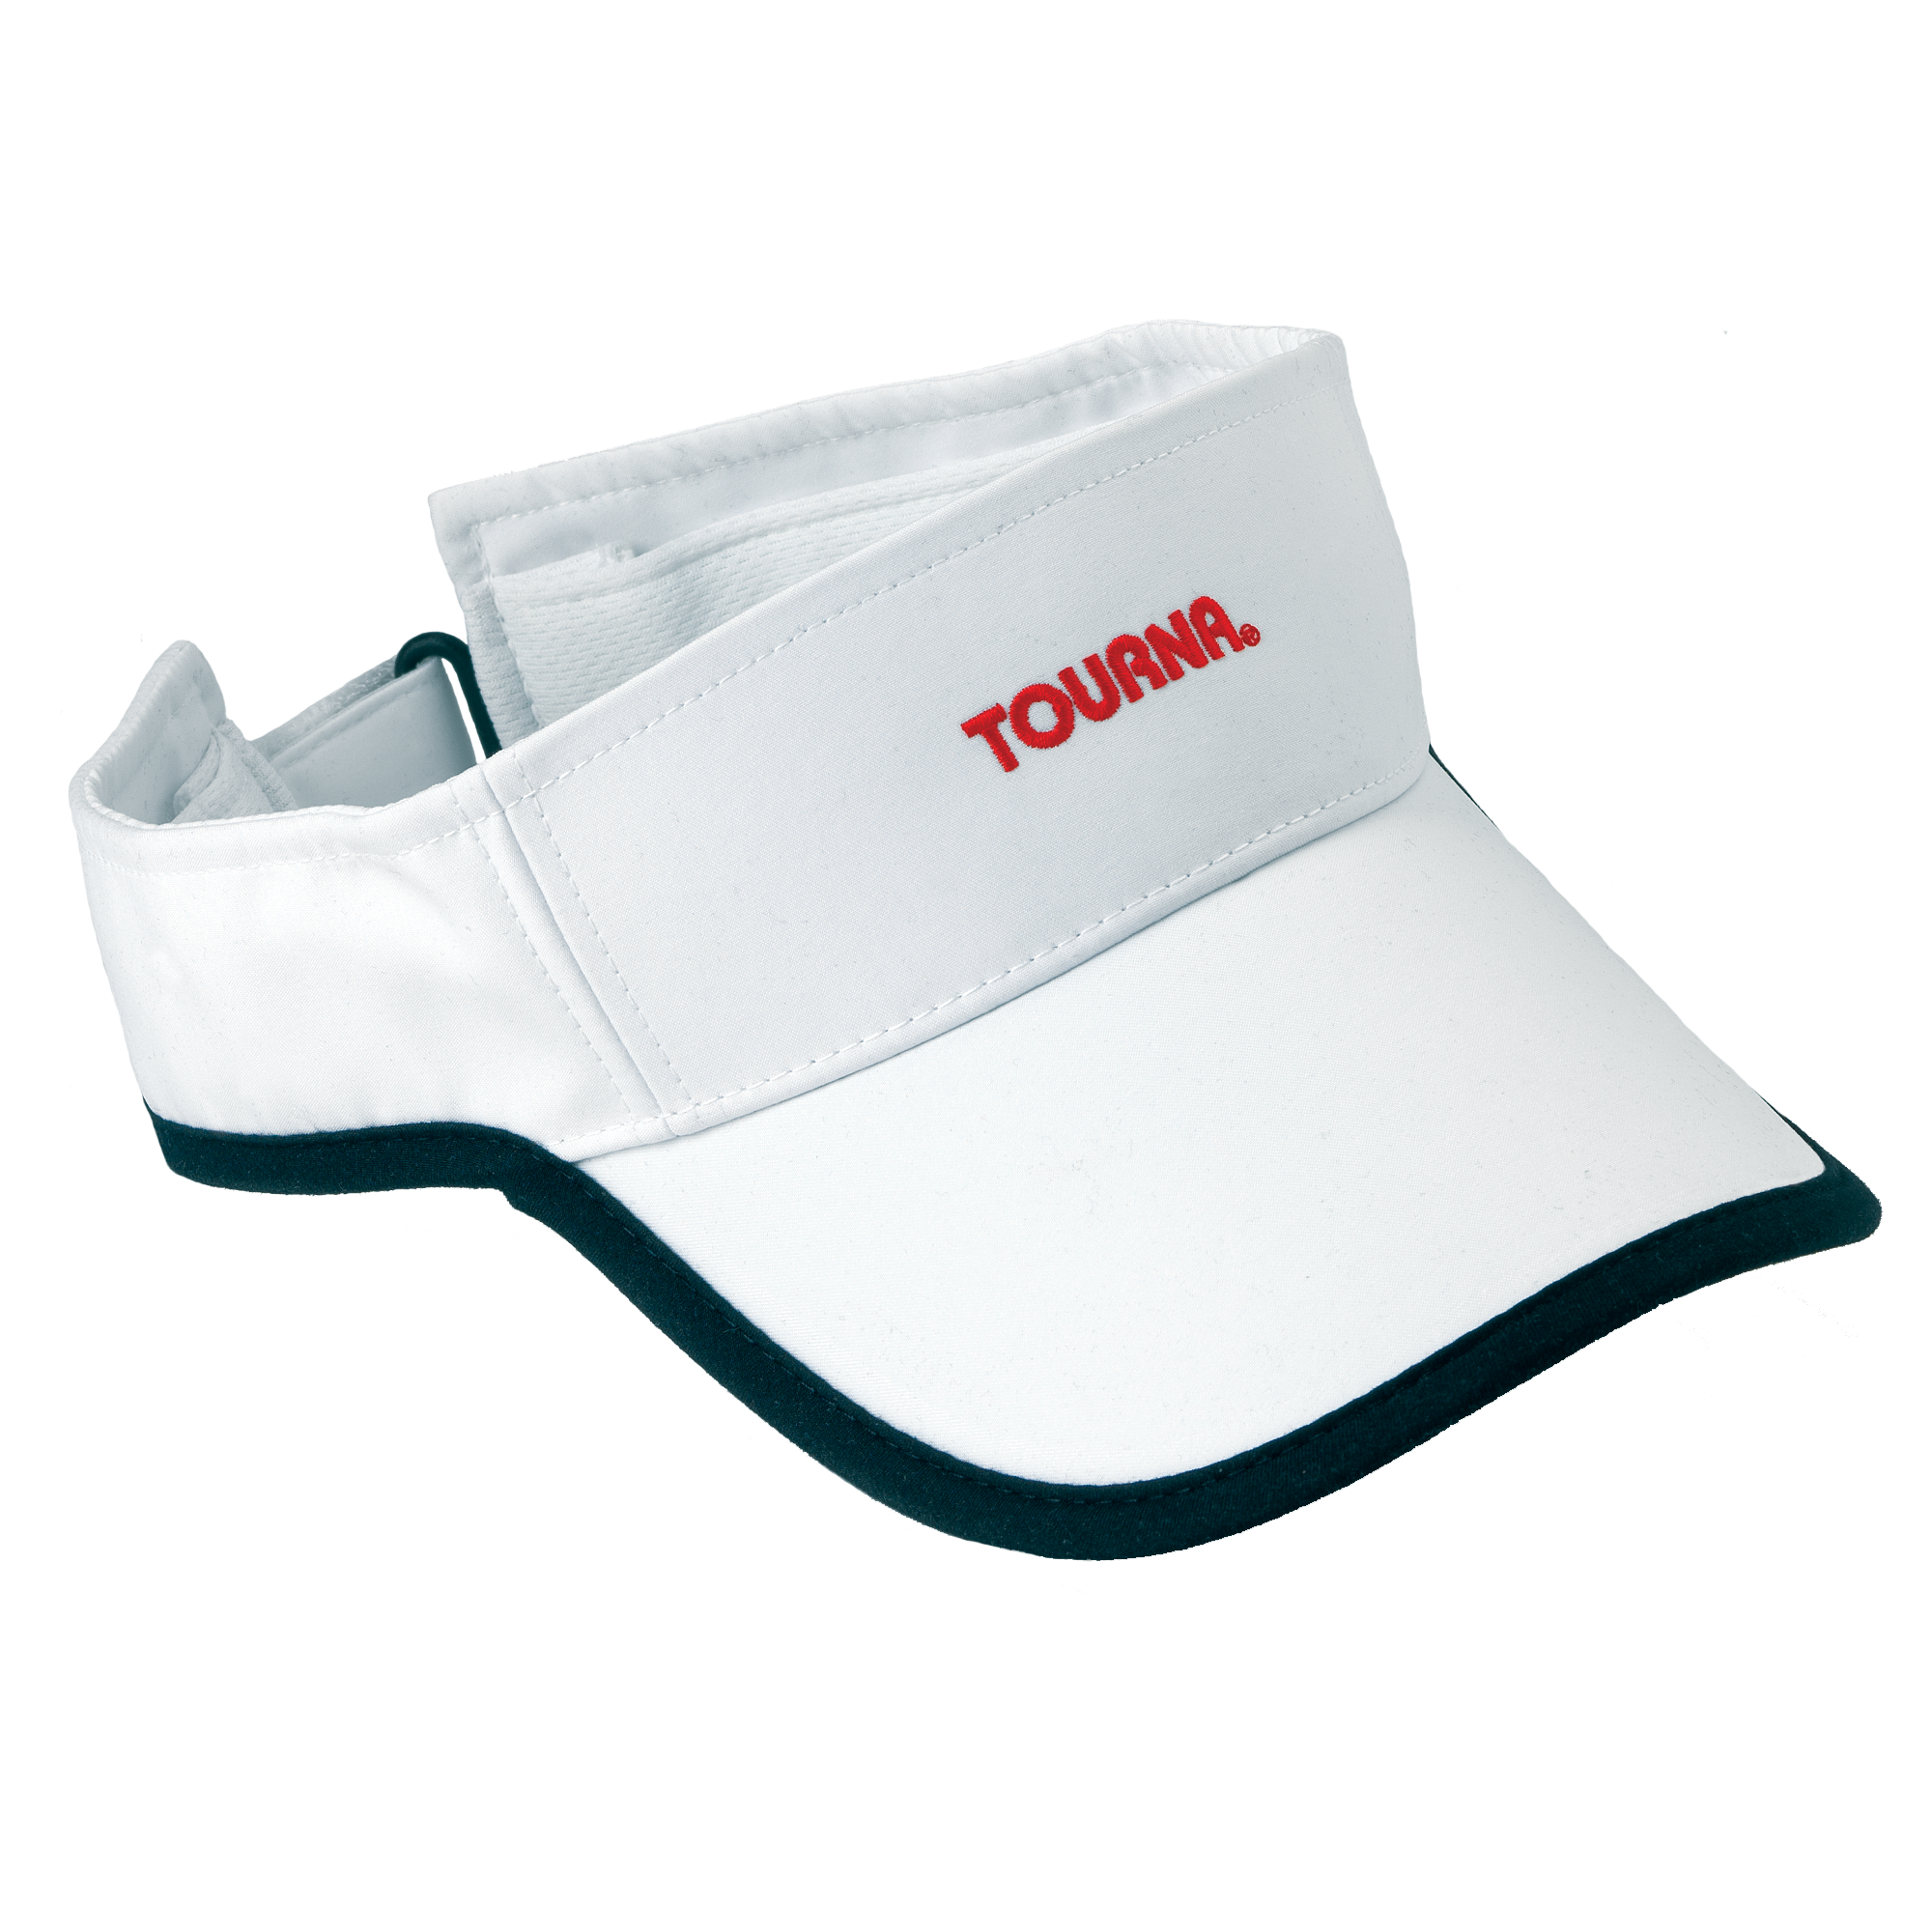 pro visor with tourna logo unique sports products